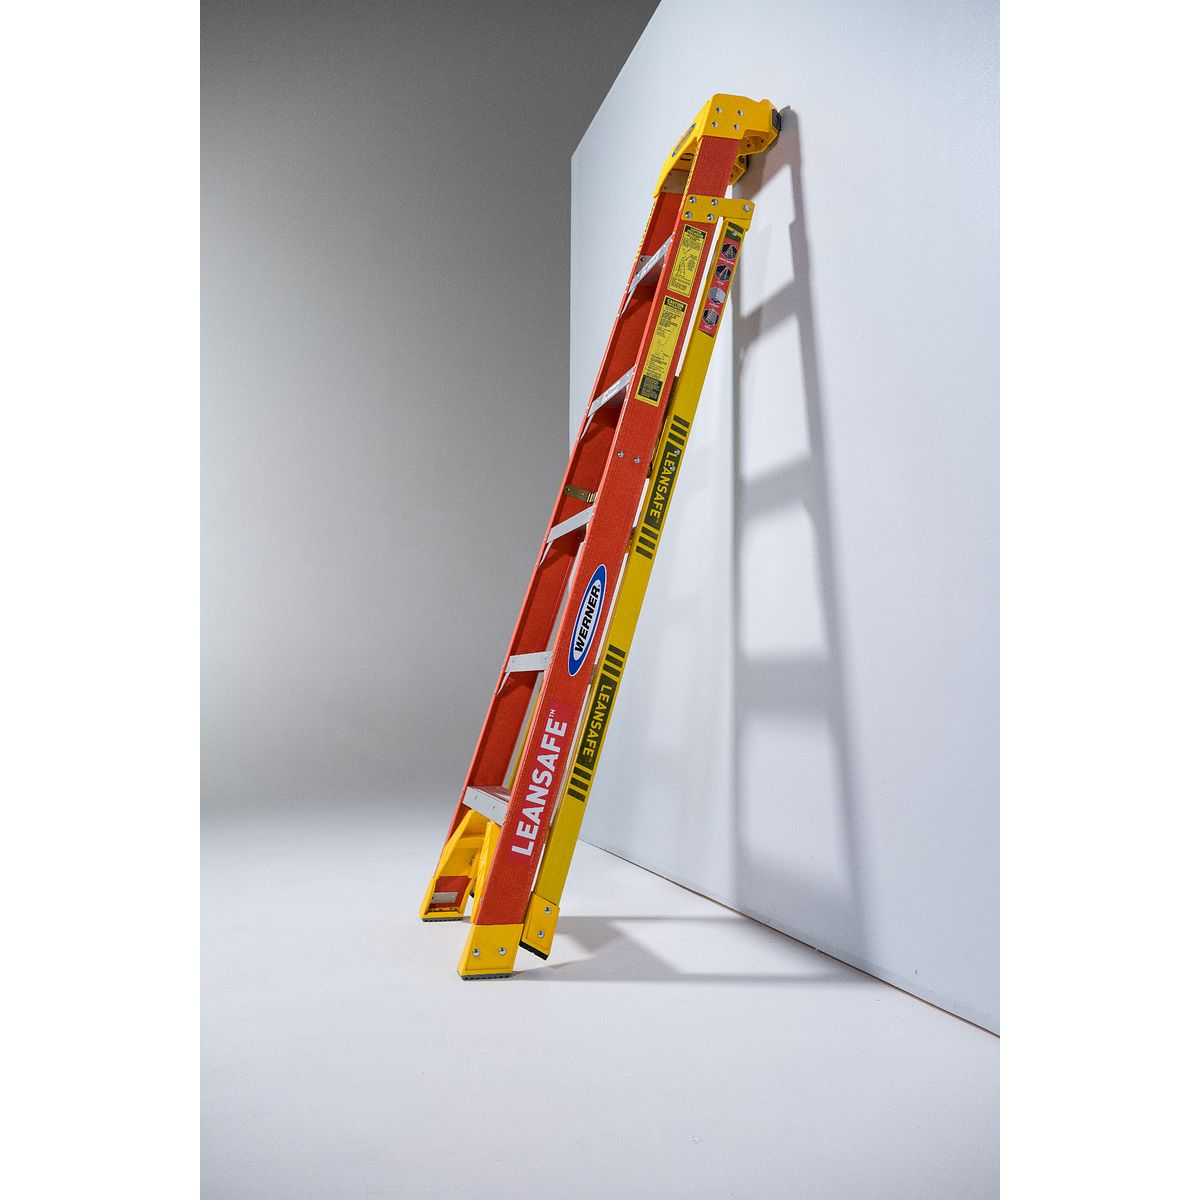 L6206 Step Ladders Werner Us